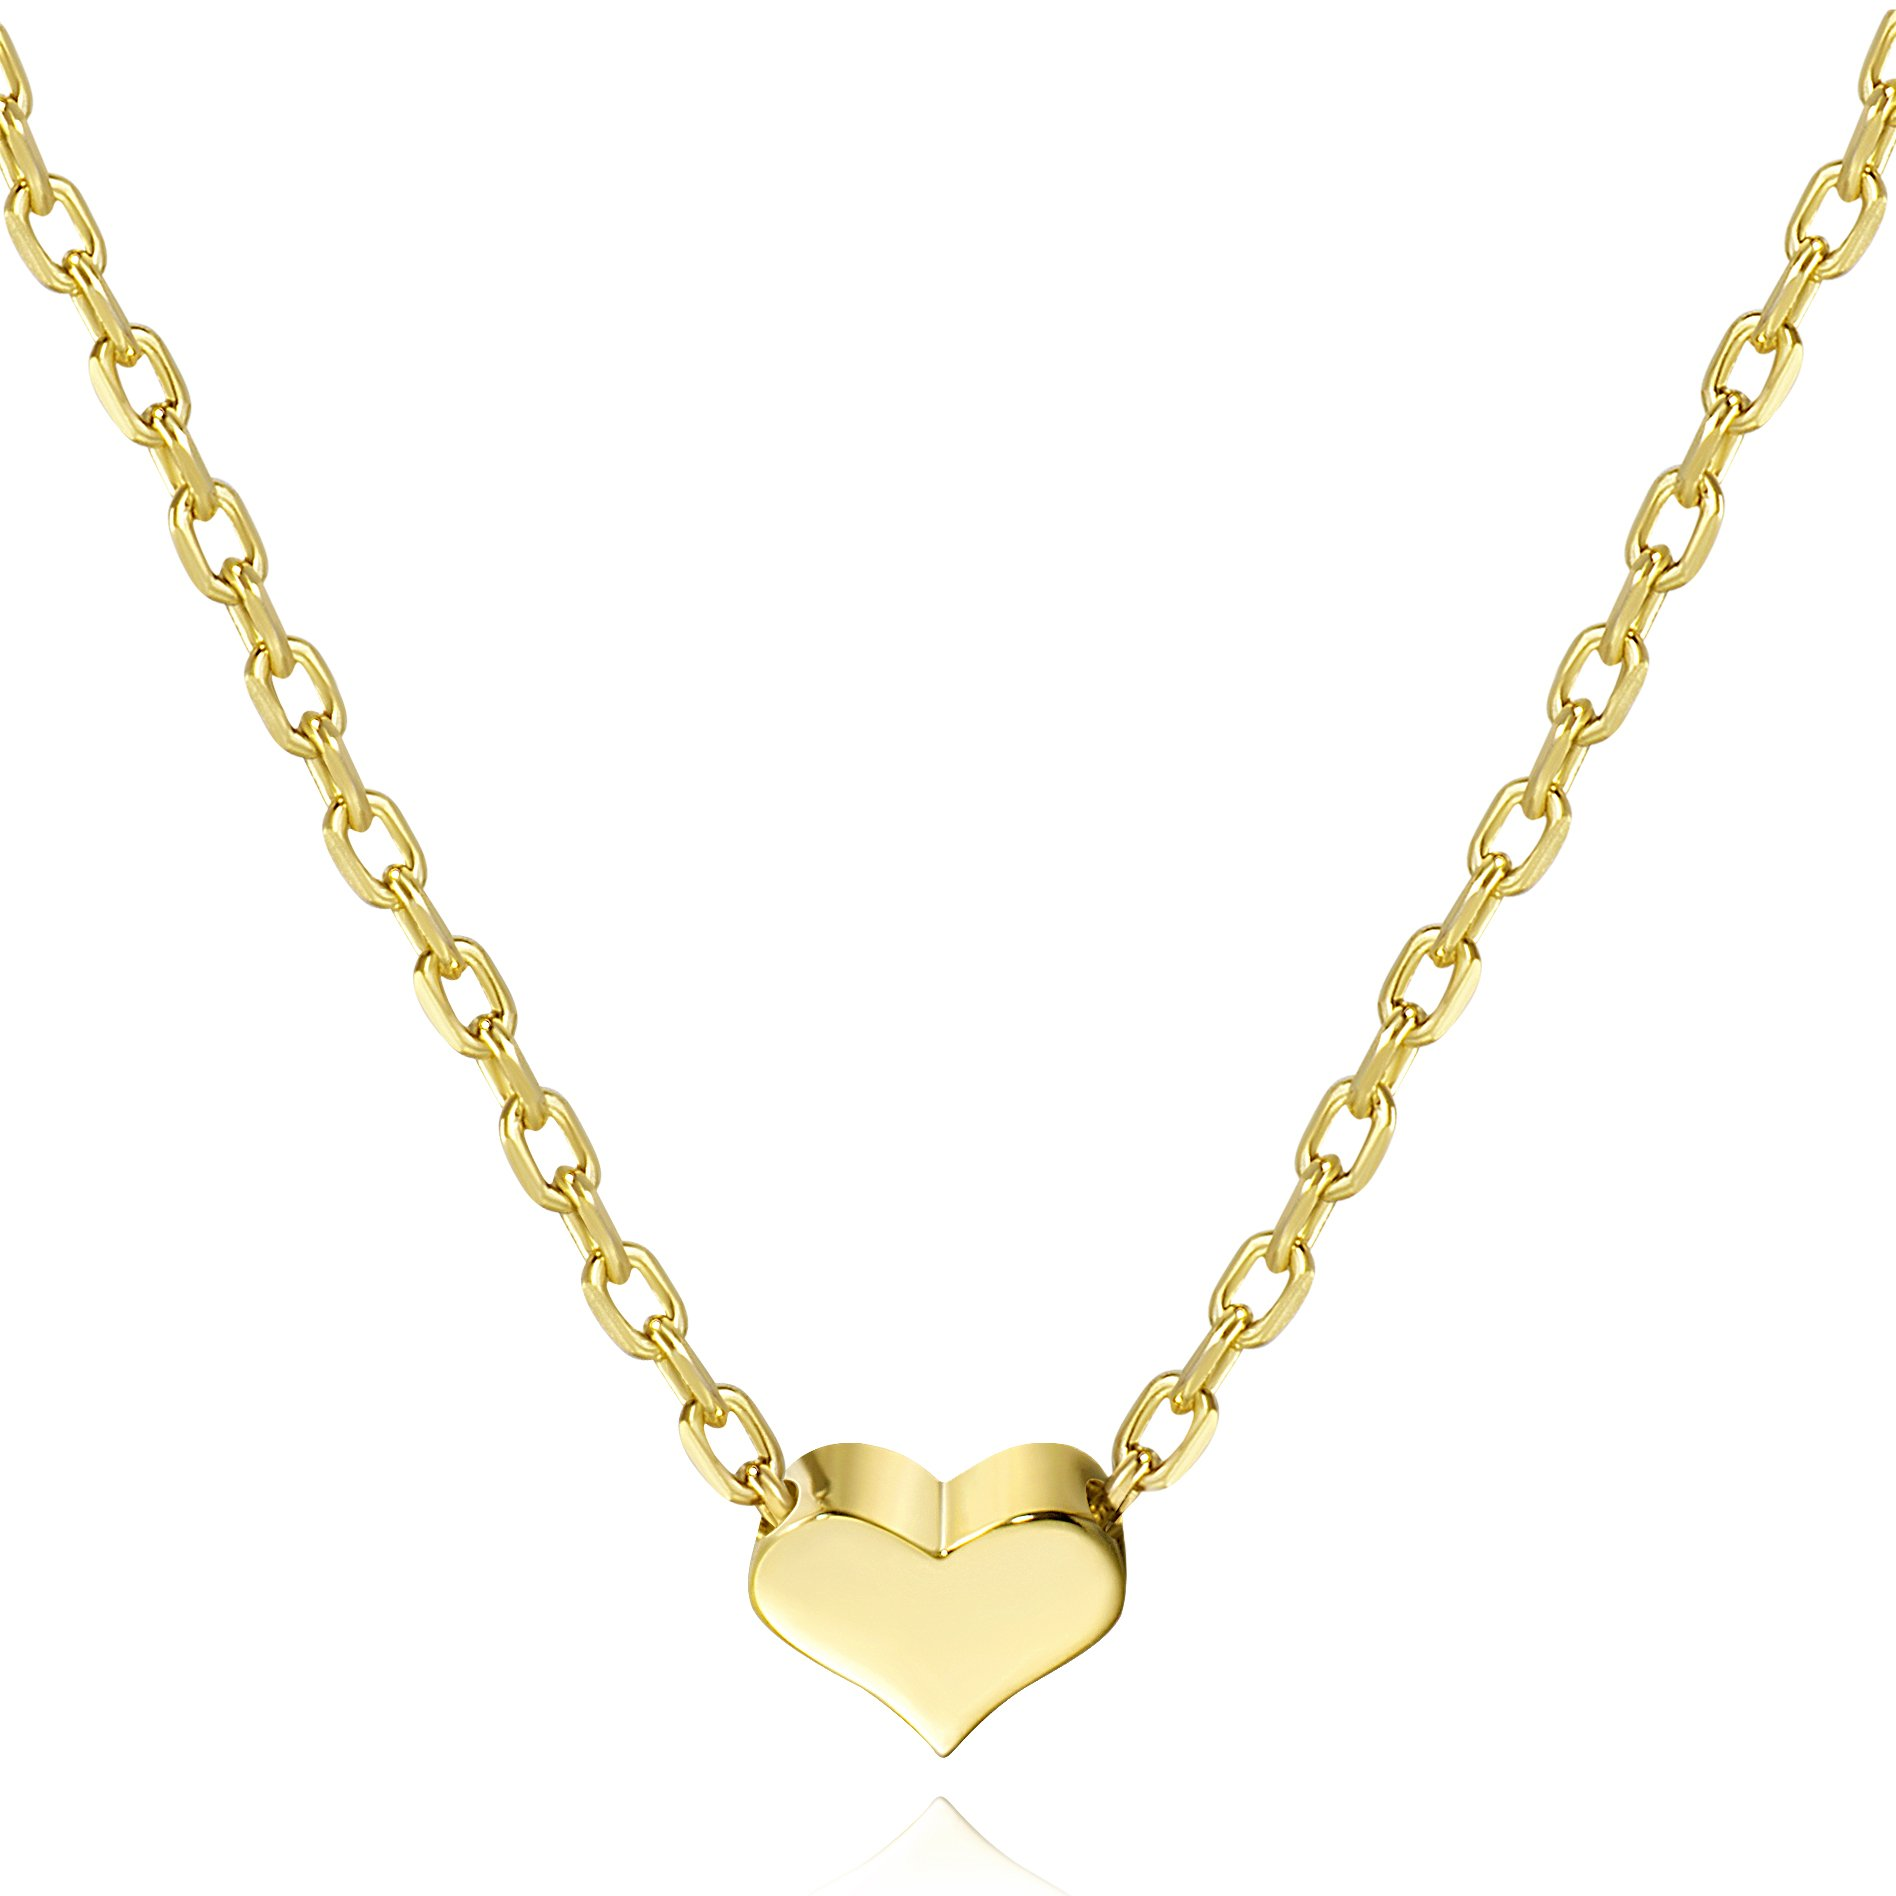 S.Leaf Tiny Heart Necklace Sterling Silver Delicate Love Heart Collar Necklace Dainty Necklace (Gold, 7)